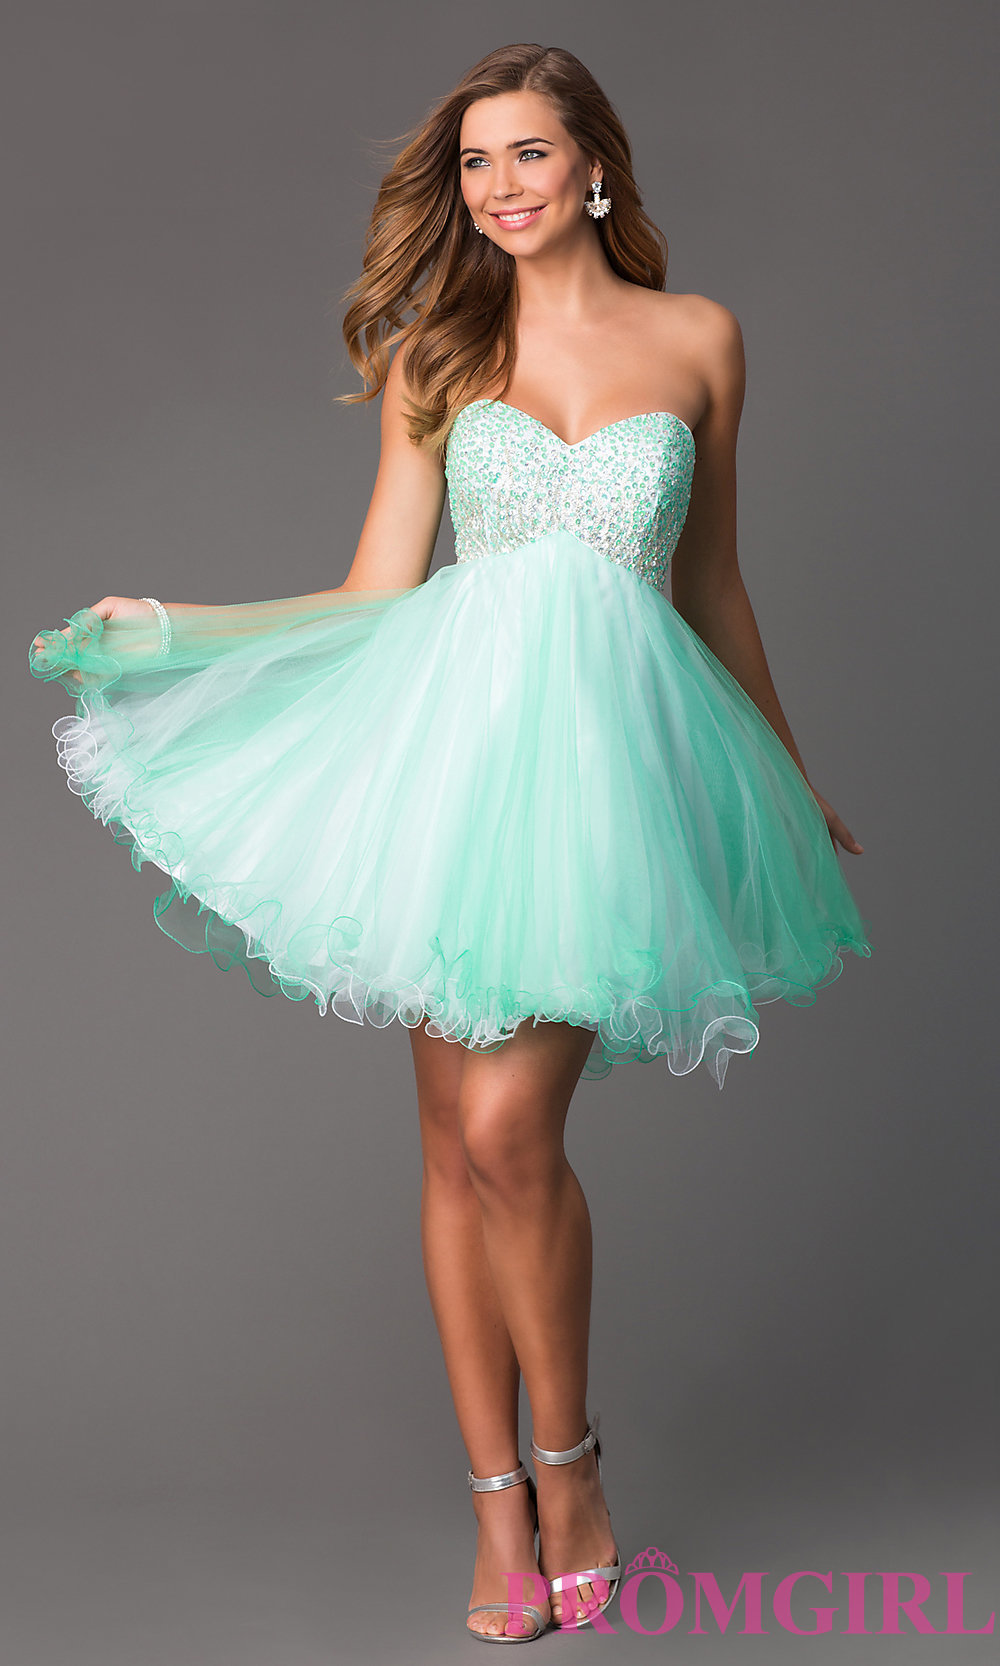 Pretty or not party dress | Playbuzz